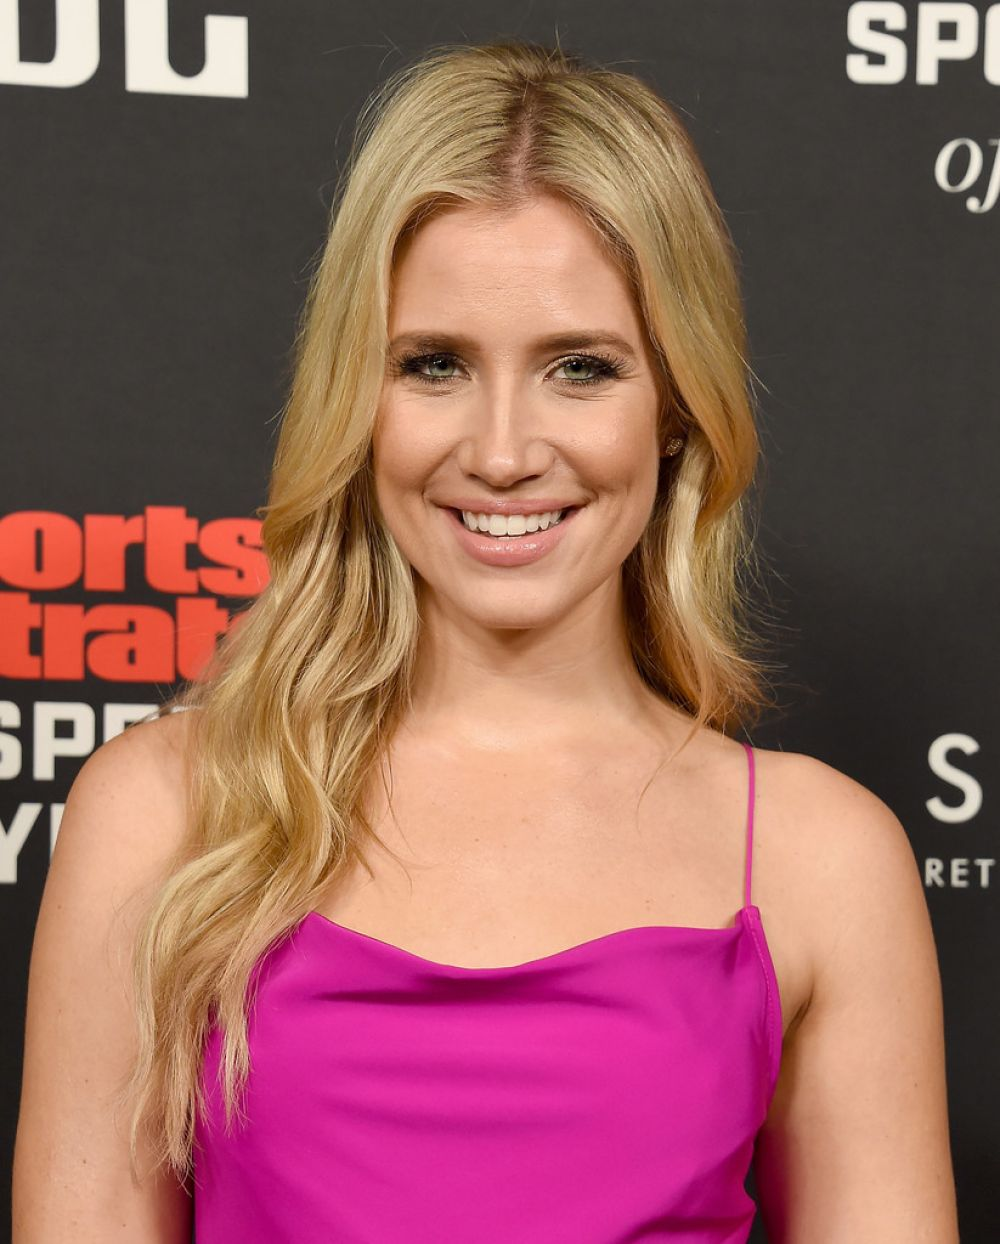 KRISTINE LEAHY At Sports Illustrated 2018 Sportsperson Of